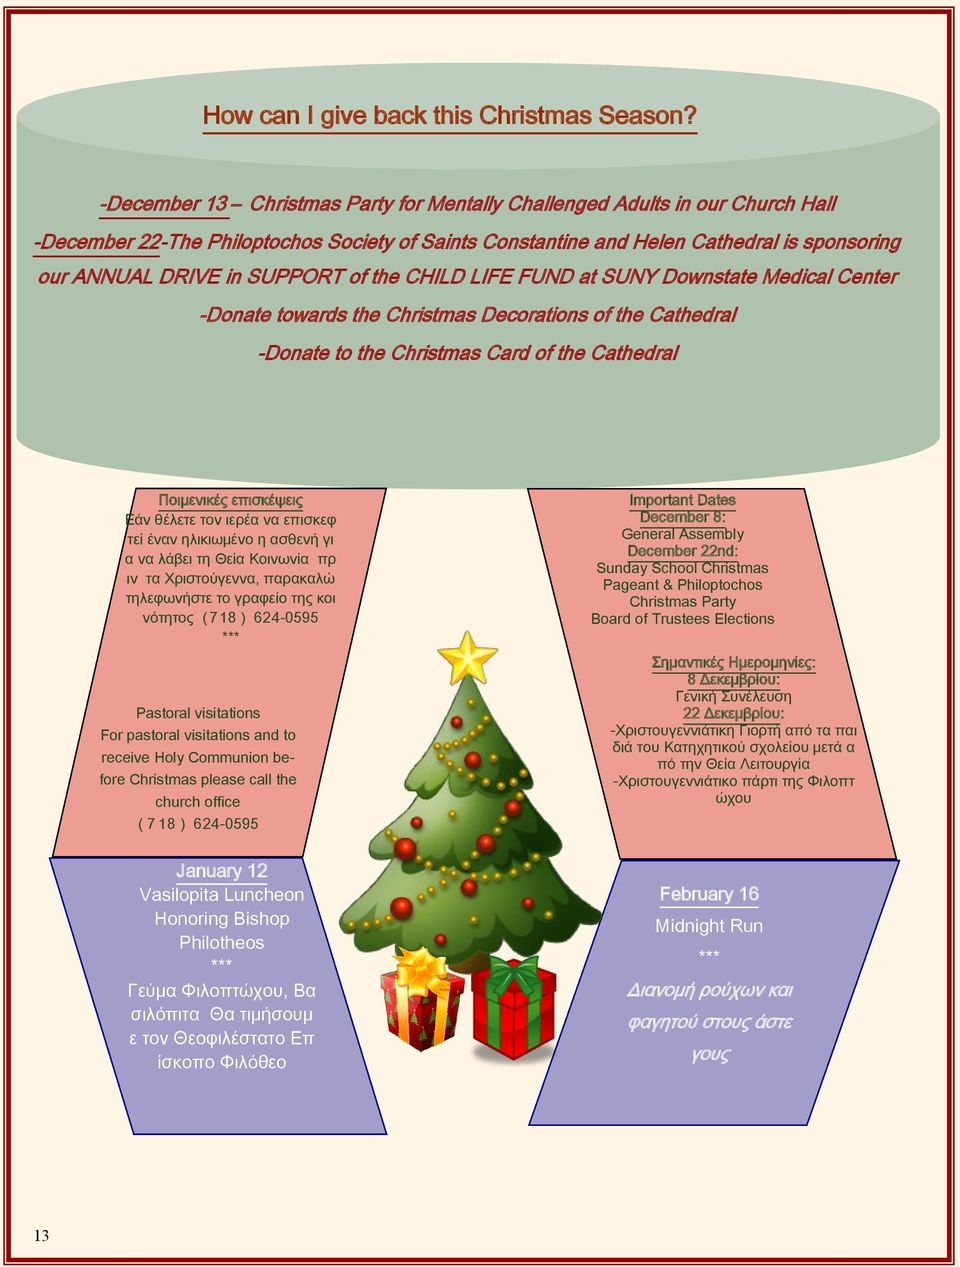 SUPPORT of the CHILD LIFE FUND at SUNY Downstate Medical Center -Donate towards the Christmas Decorations of the Cathedral -Donate to the Christmas Card of the Cathedral Ποιμενικές επισκέψεις Εάν